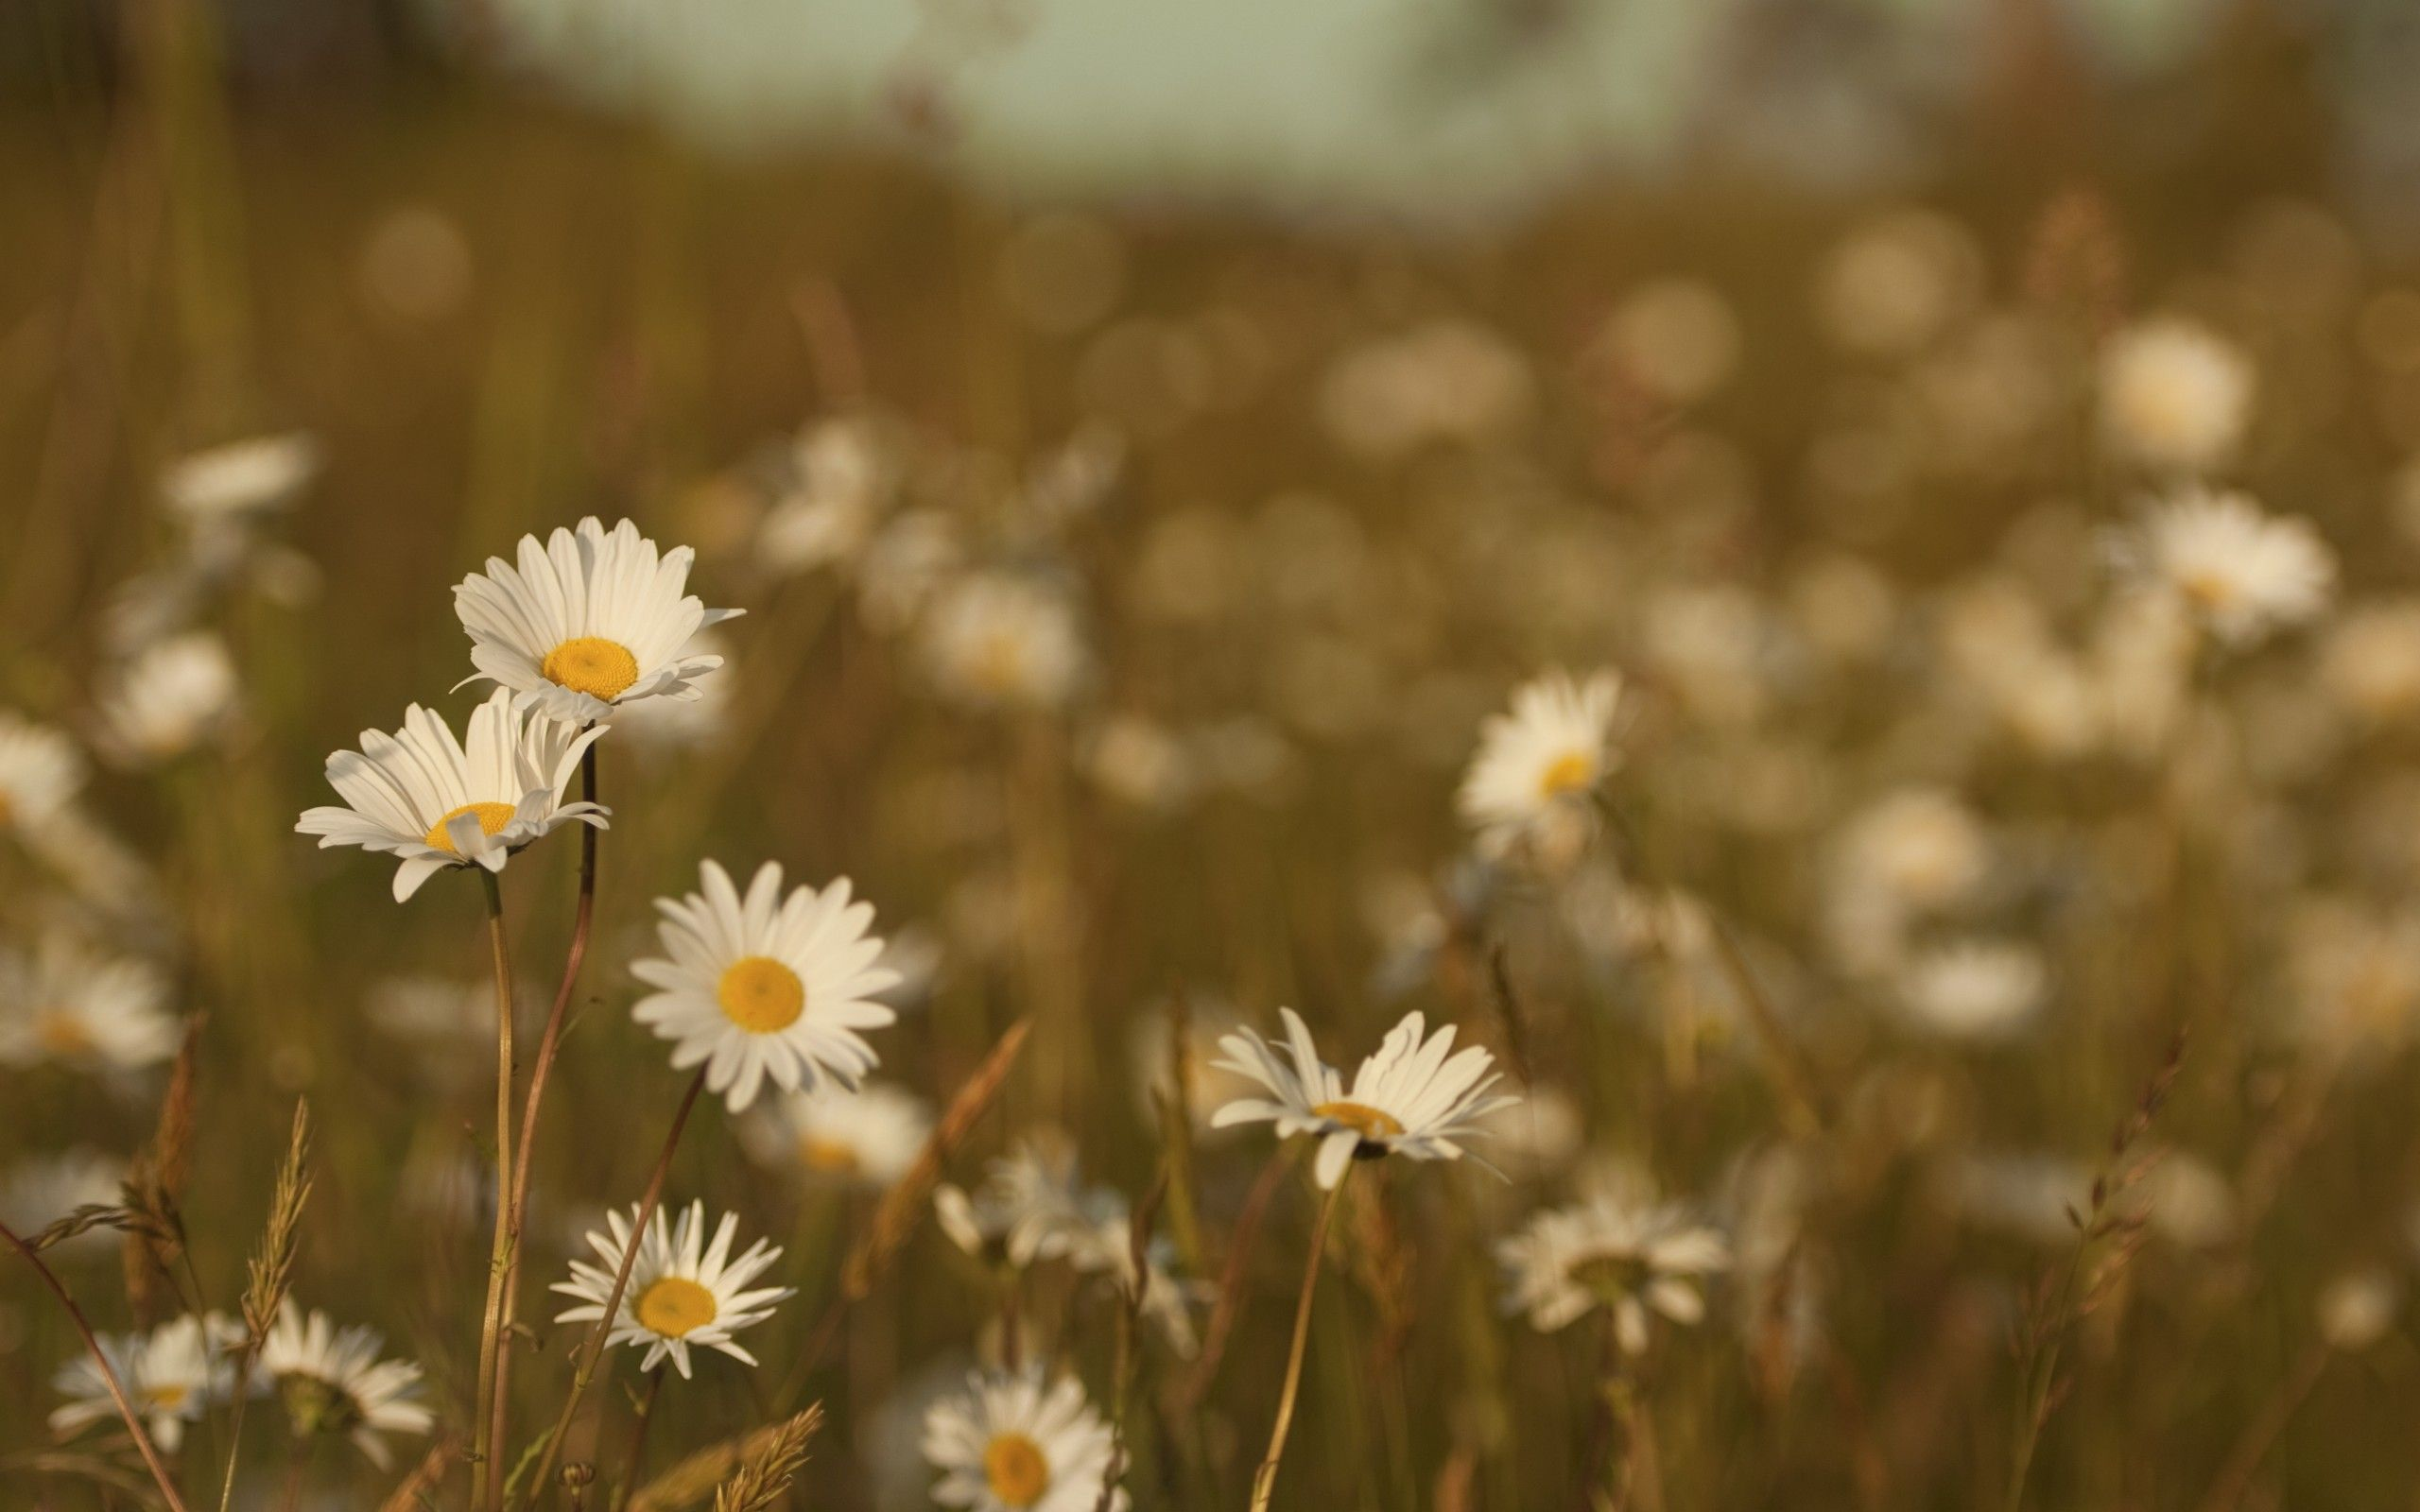 Wallpaper 2560x1600 Field Meadow Grass Summer Flowers Heat Color Daisies Background Download W Daisy Wallpaper Flower Field Watercolor Flowers Paintings